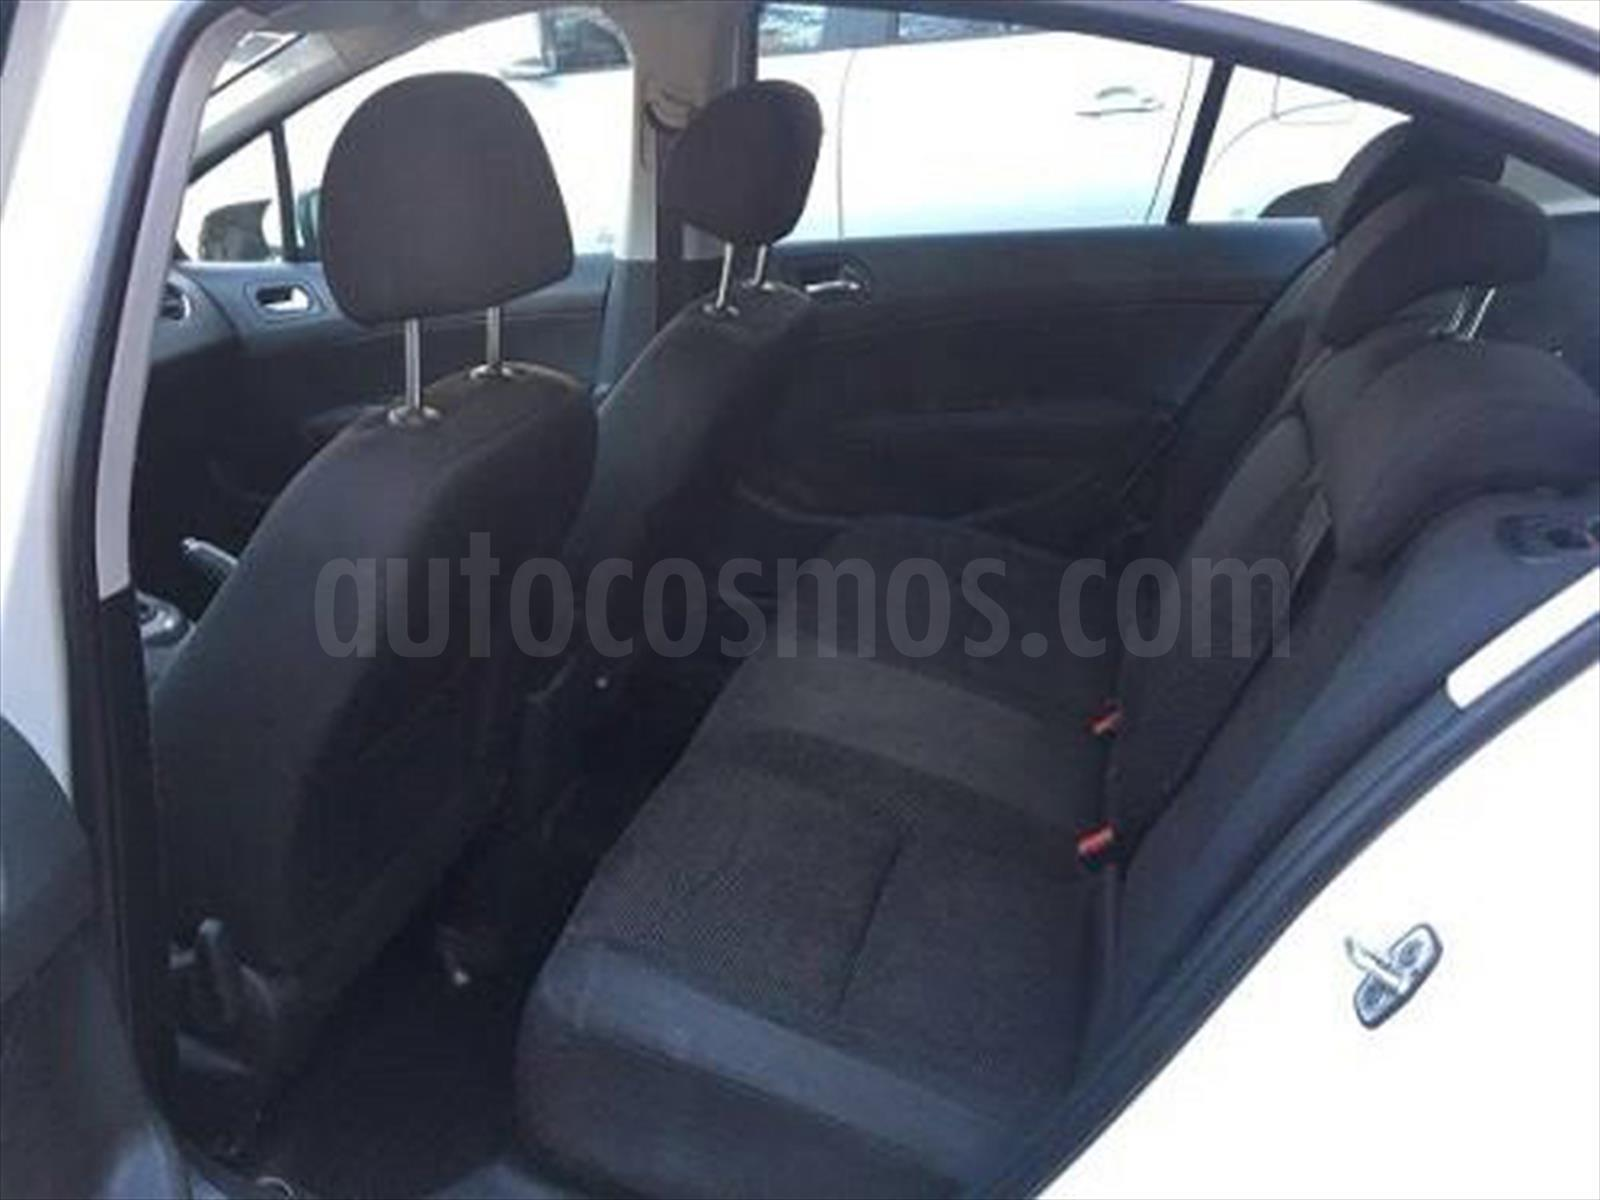 Venta autos usado capital federal peugeot 408 allure for Interior 408 allure